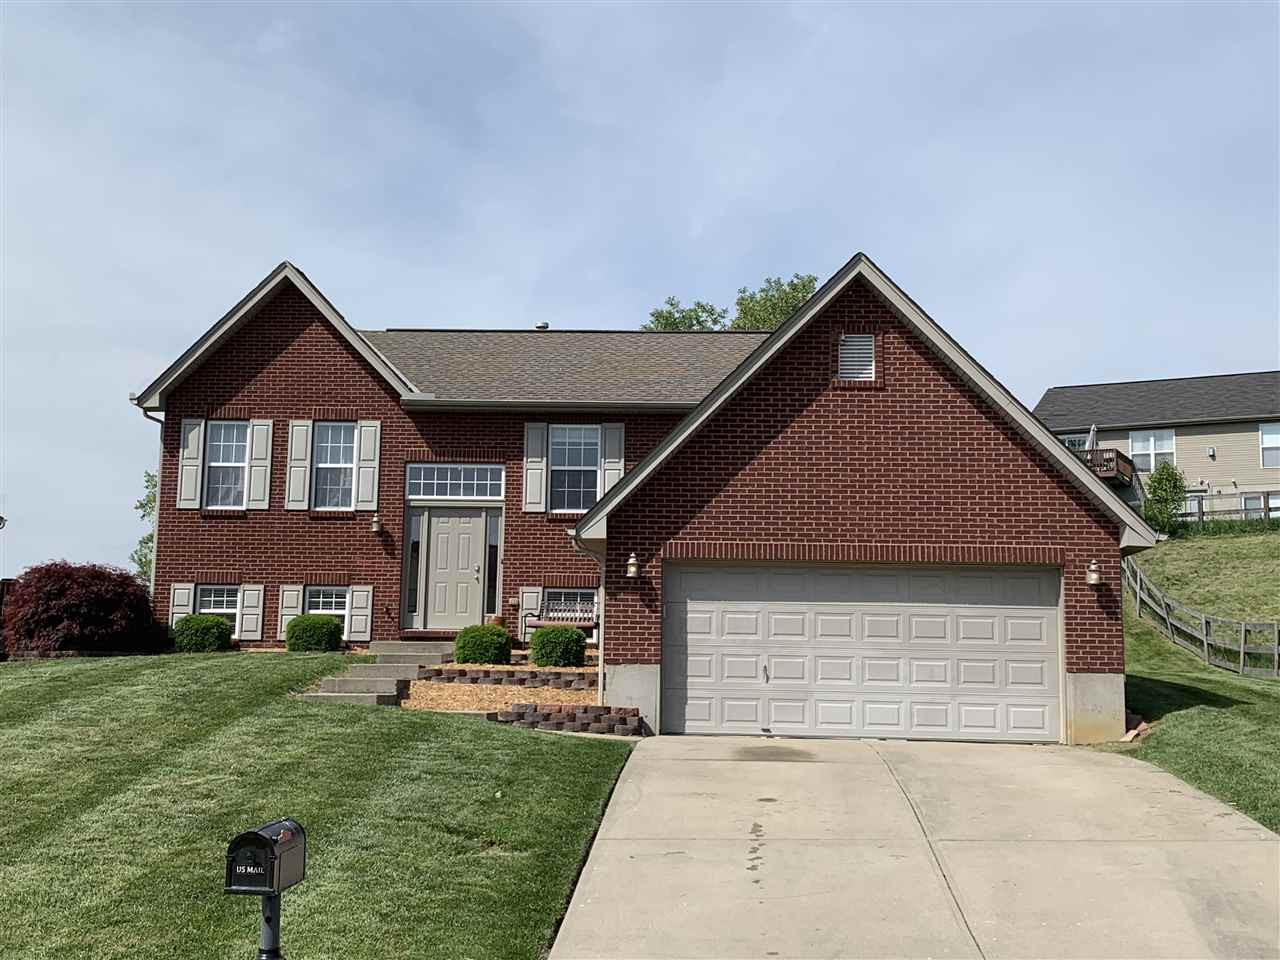 Photo 1 for 3241 Mitchell Ct Burlington, KY 41005